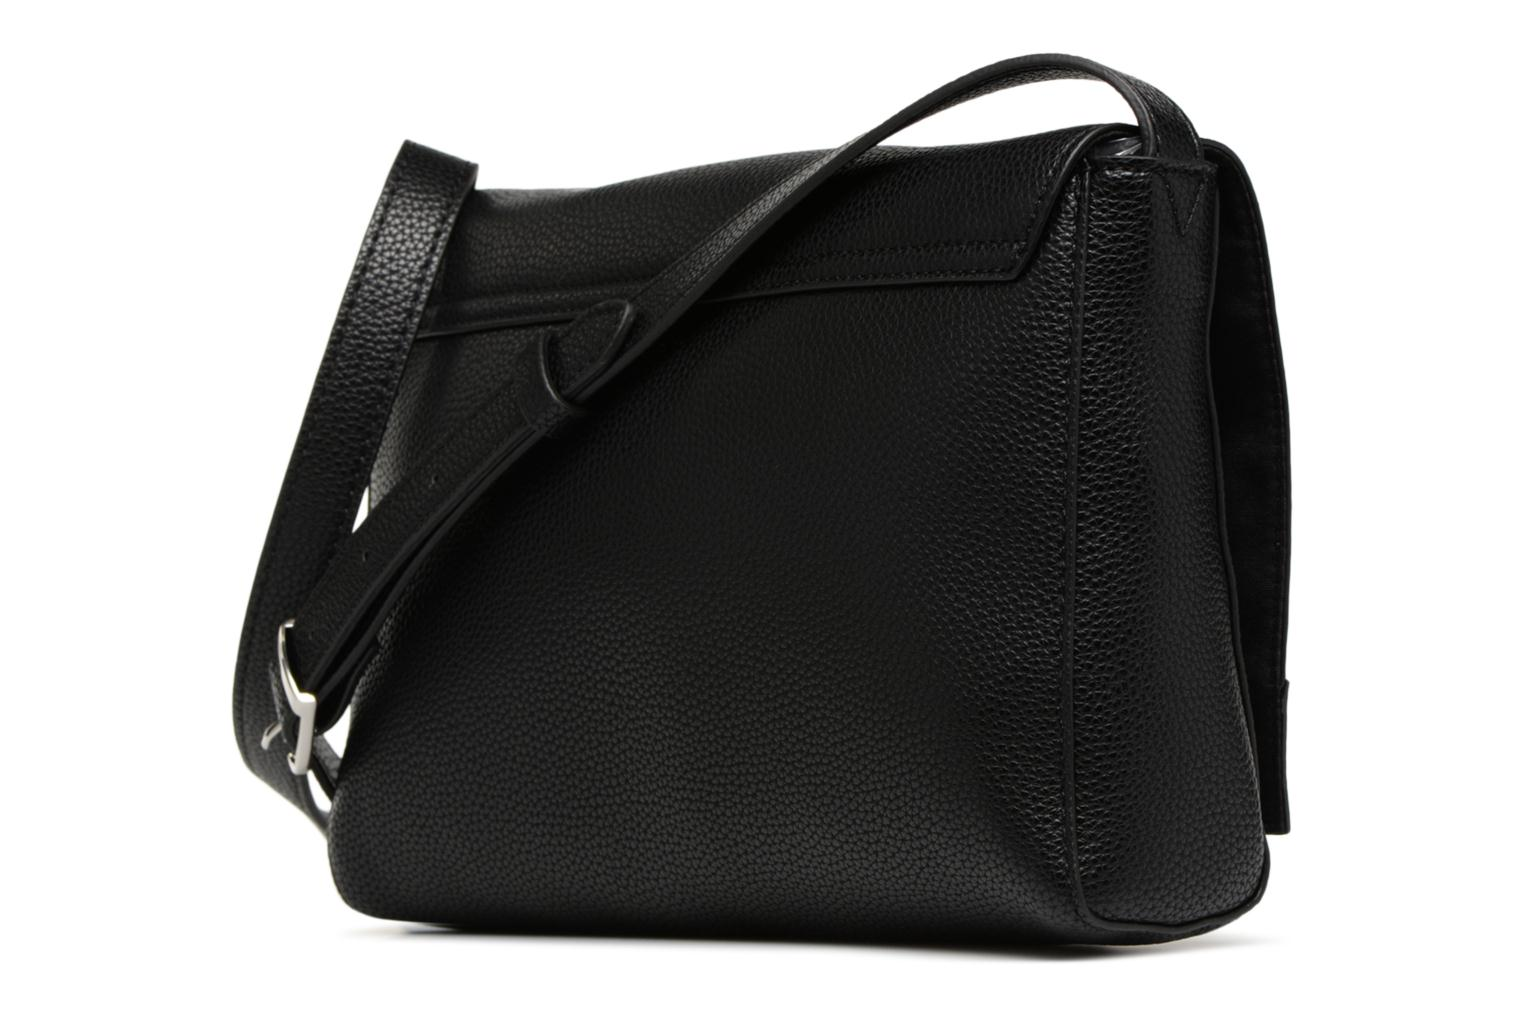 Bag black 001 Fran Esprit Shoulder qUwn6TEp